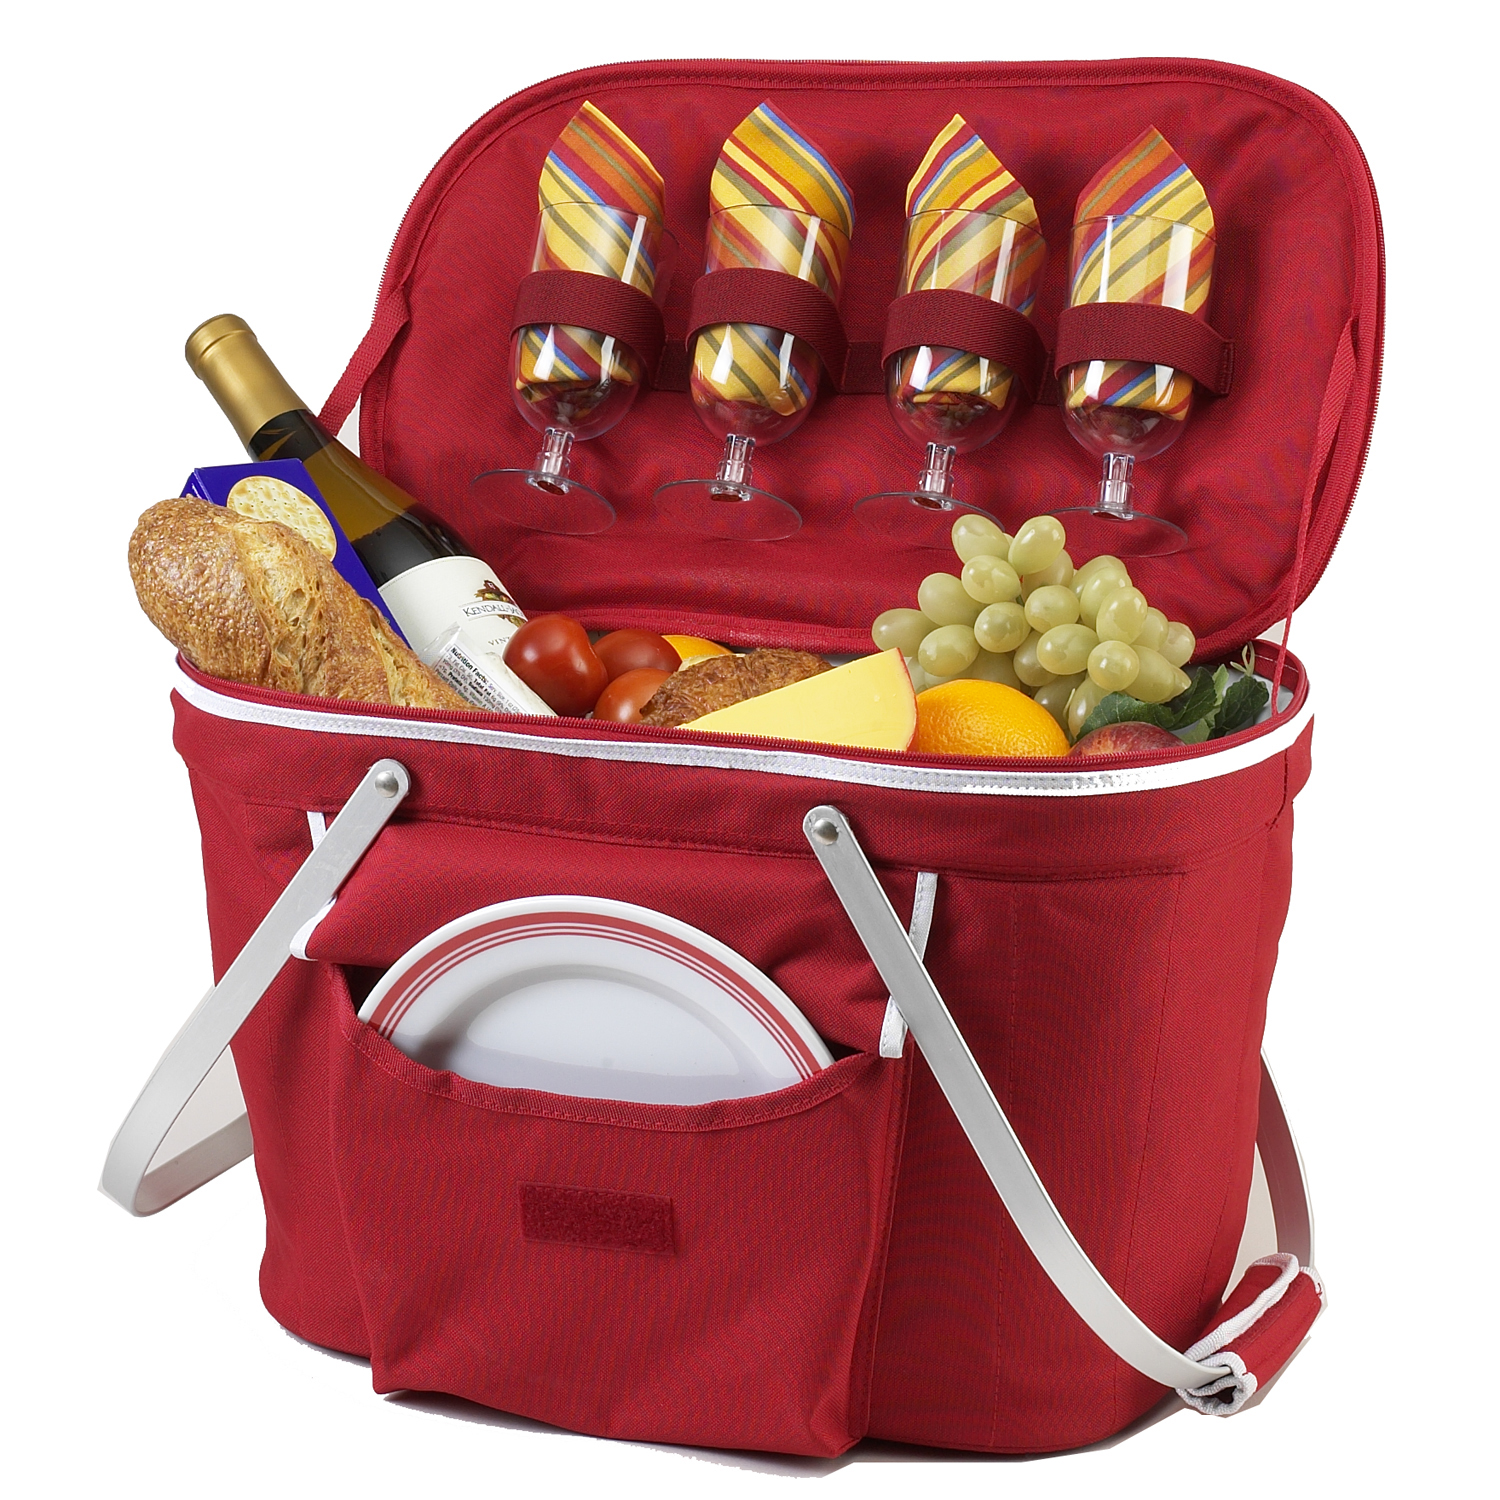 Picnic at Ascot Collapsible Insulated Picnic Basket for 4 (401-R)